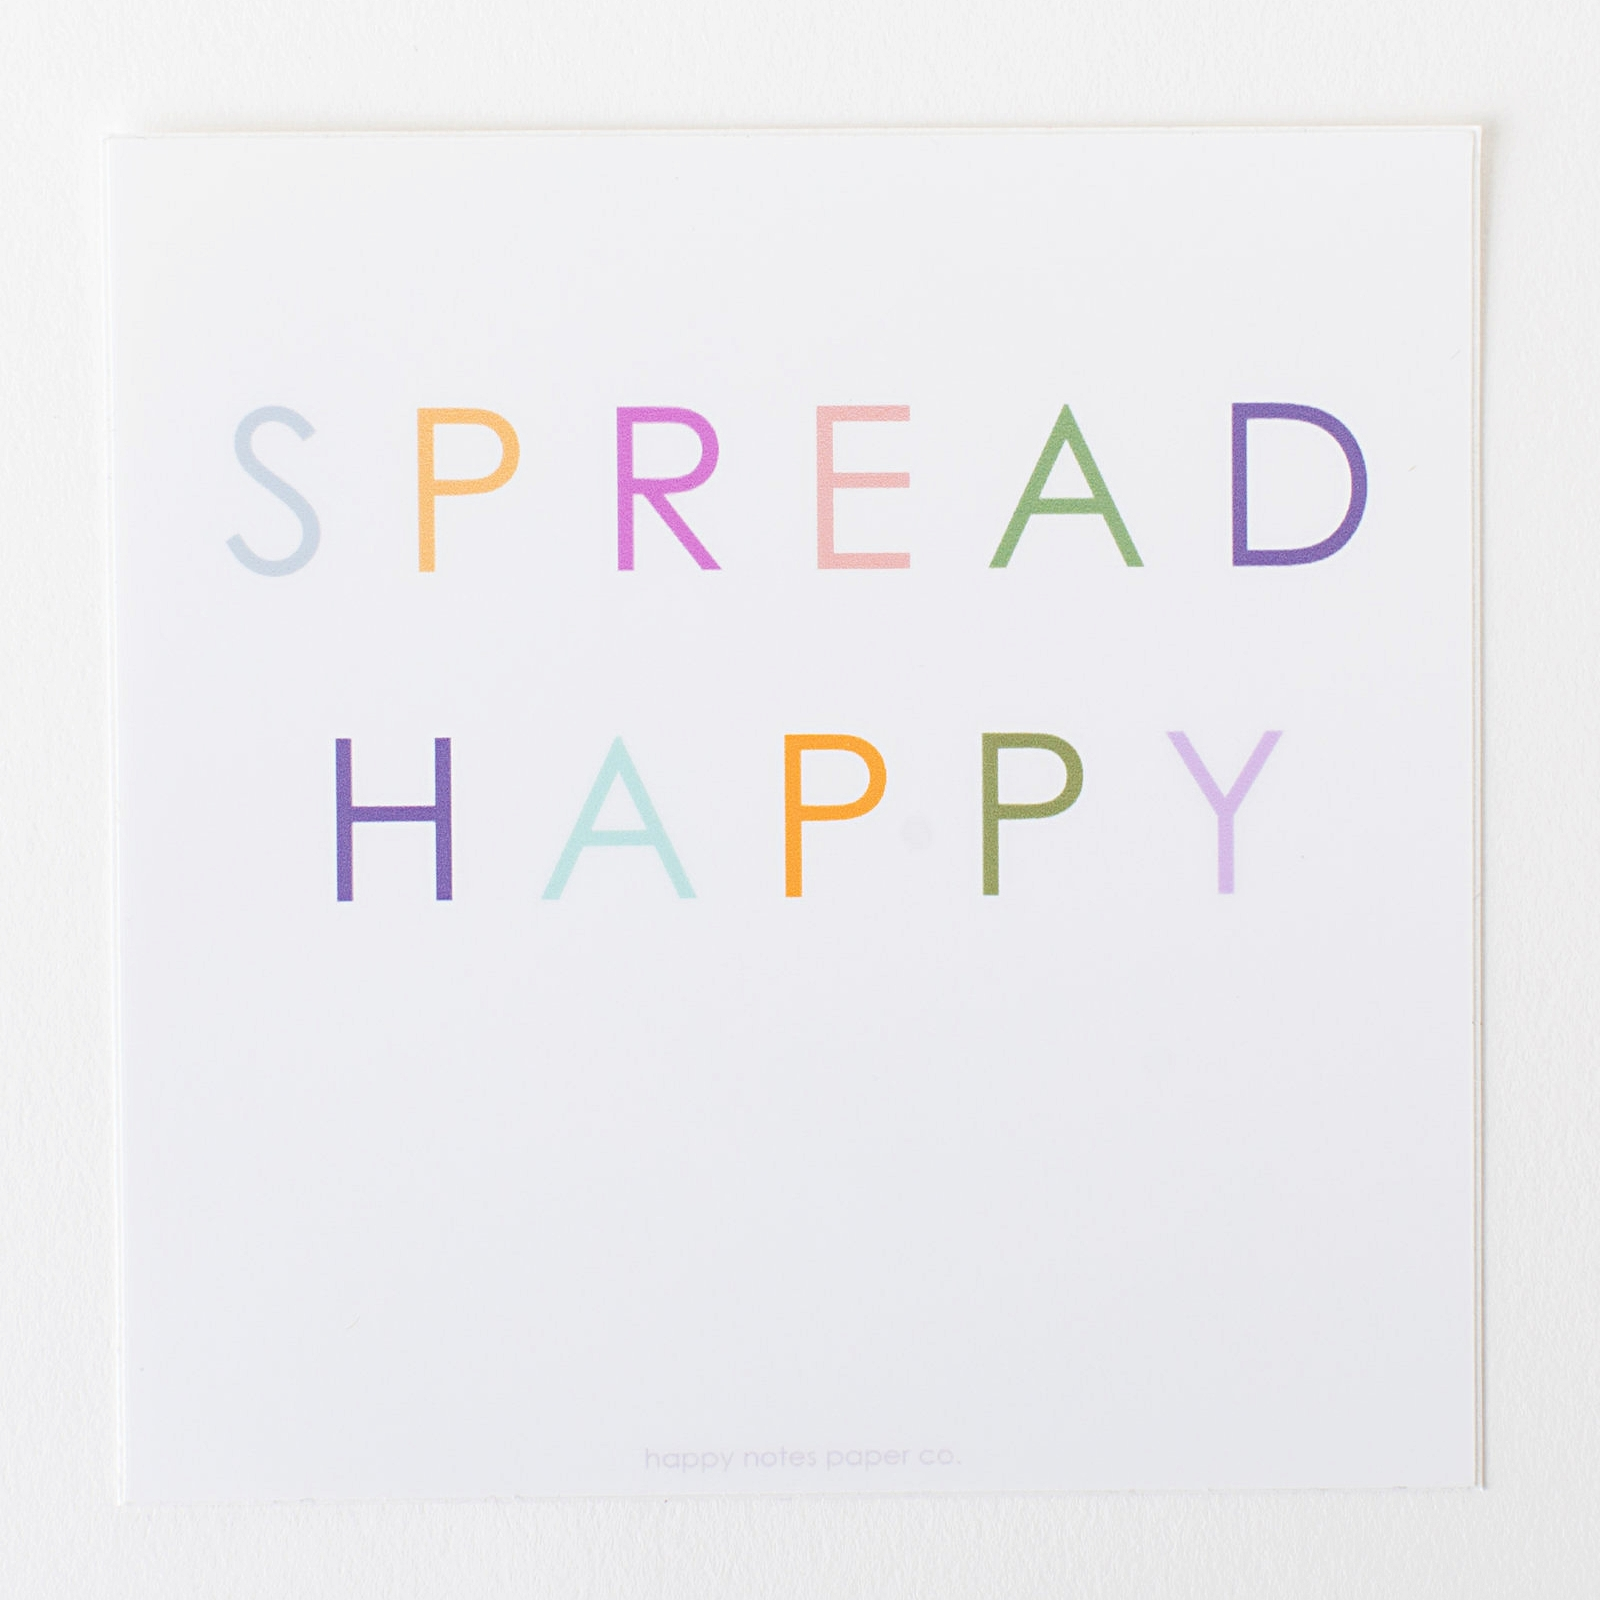 Spread happy sticker